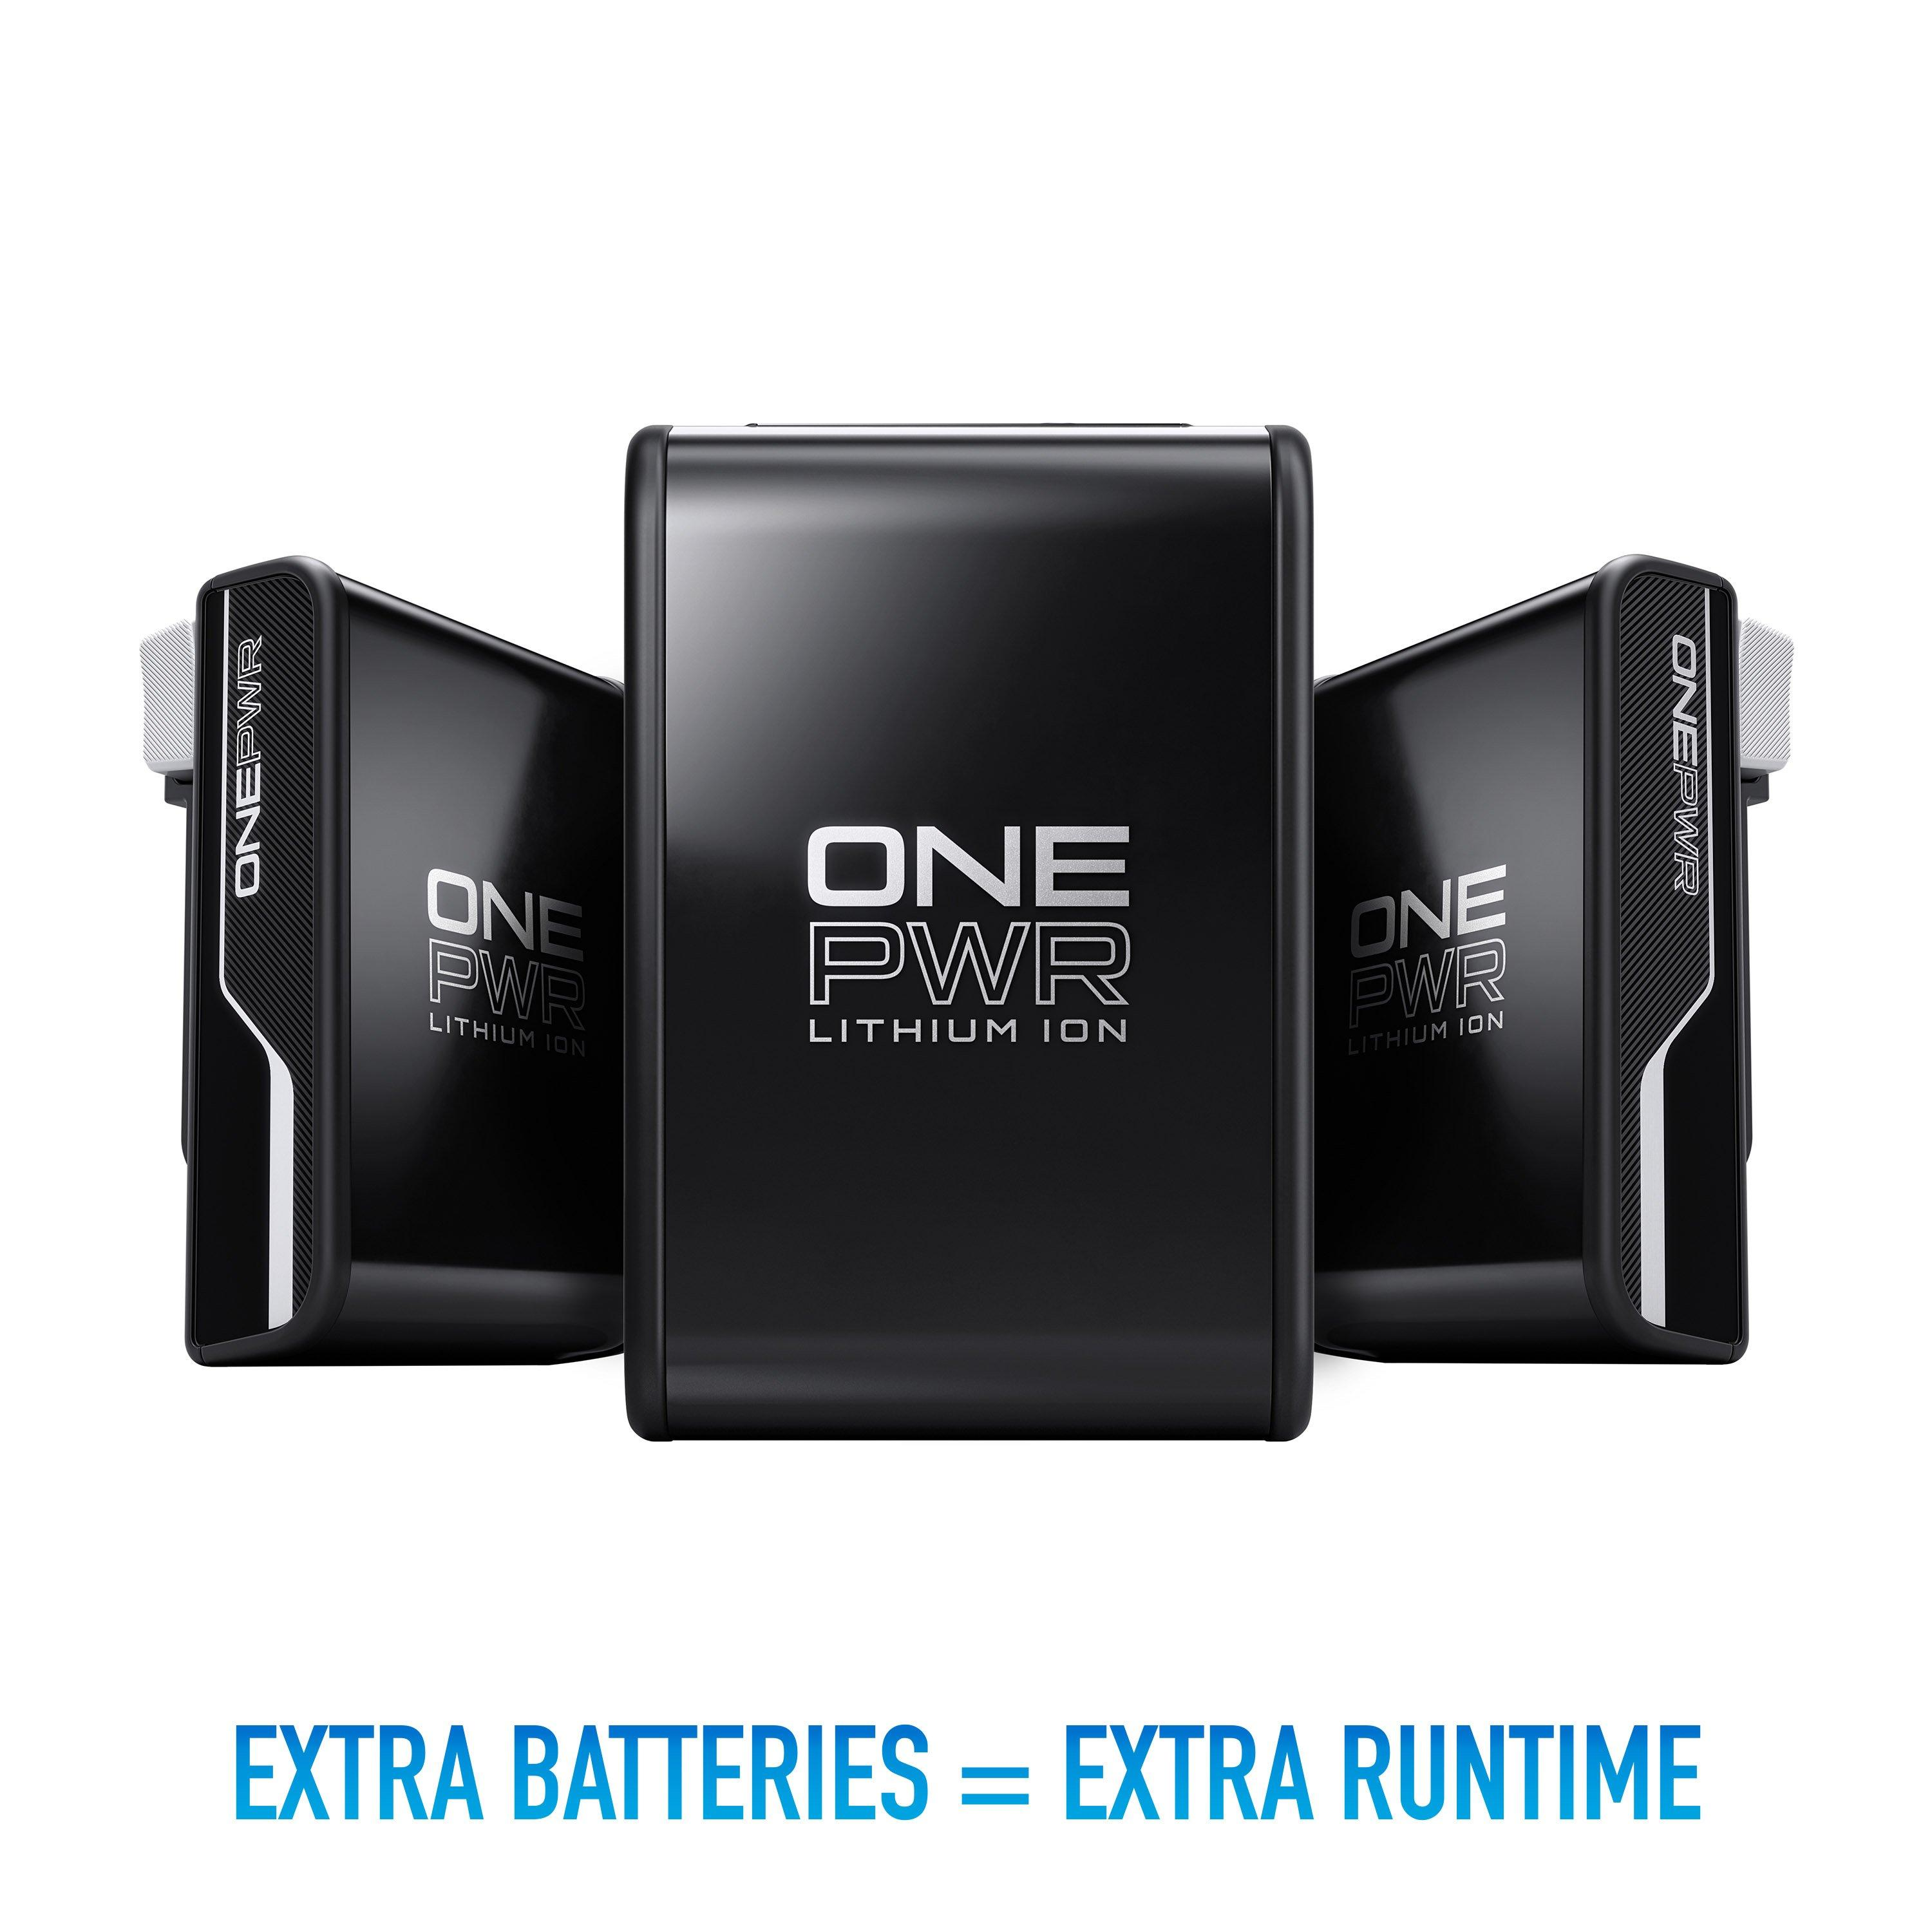 ONEPWR 4.0 Ah MAX Lithium-Ion Battery4